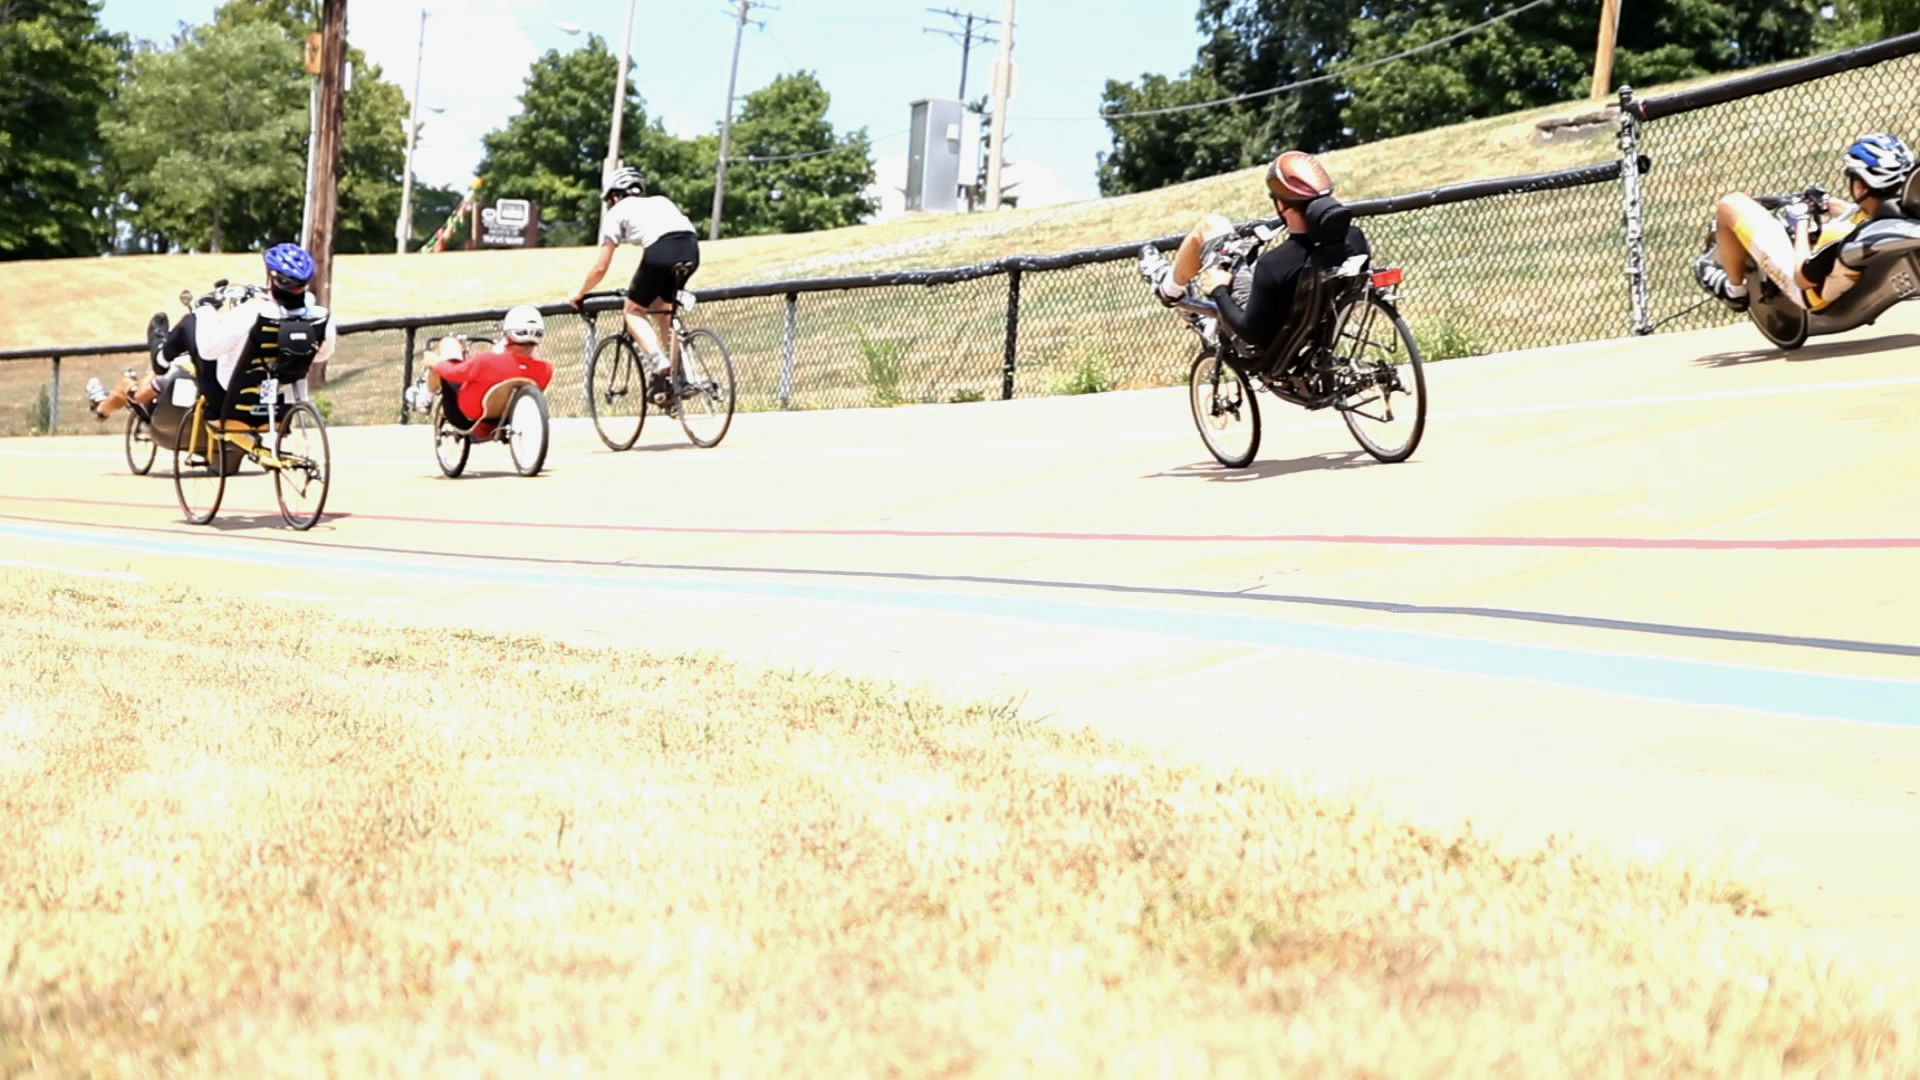 The stock class races. Nick is on his upright bike at Kenosha, with Calvin trailing just behind him on the recumbent.